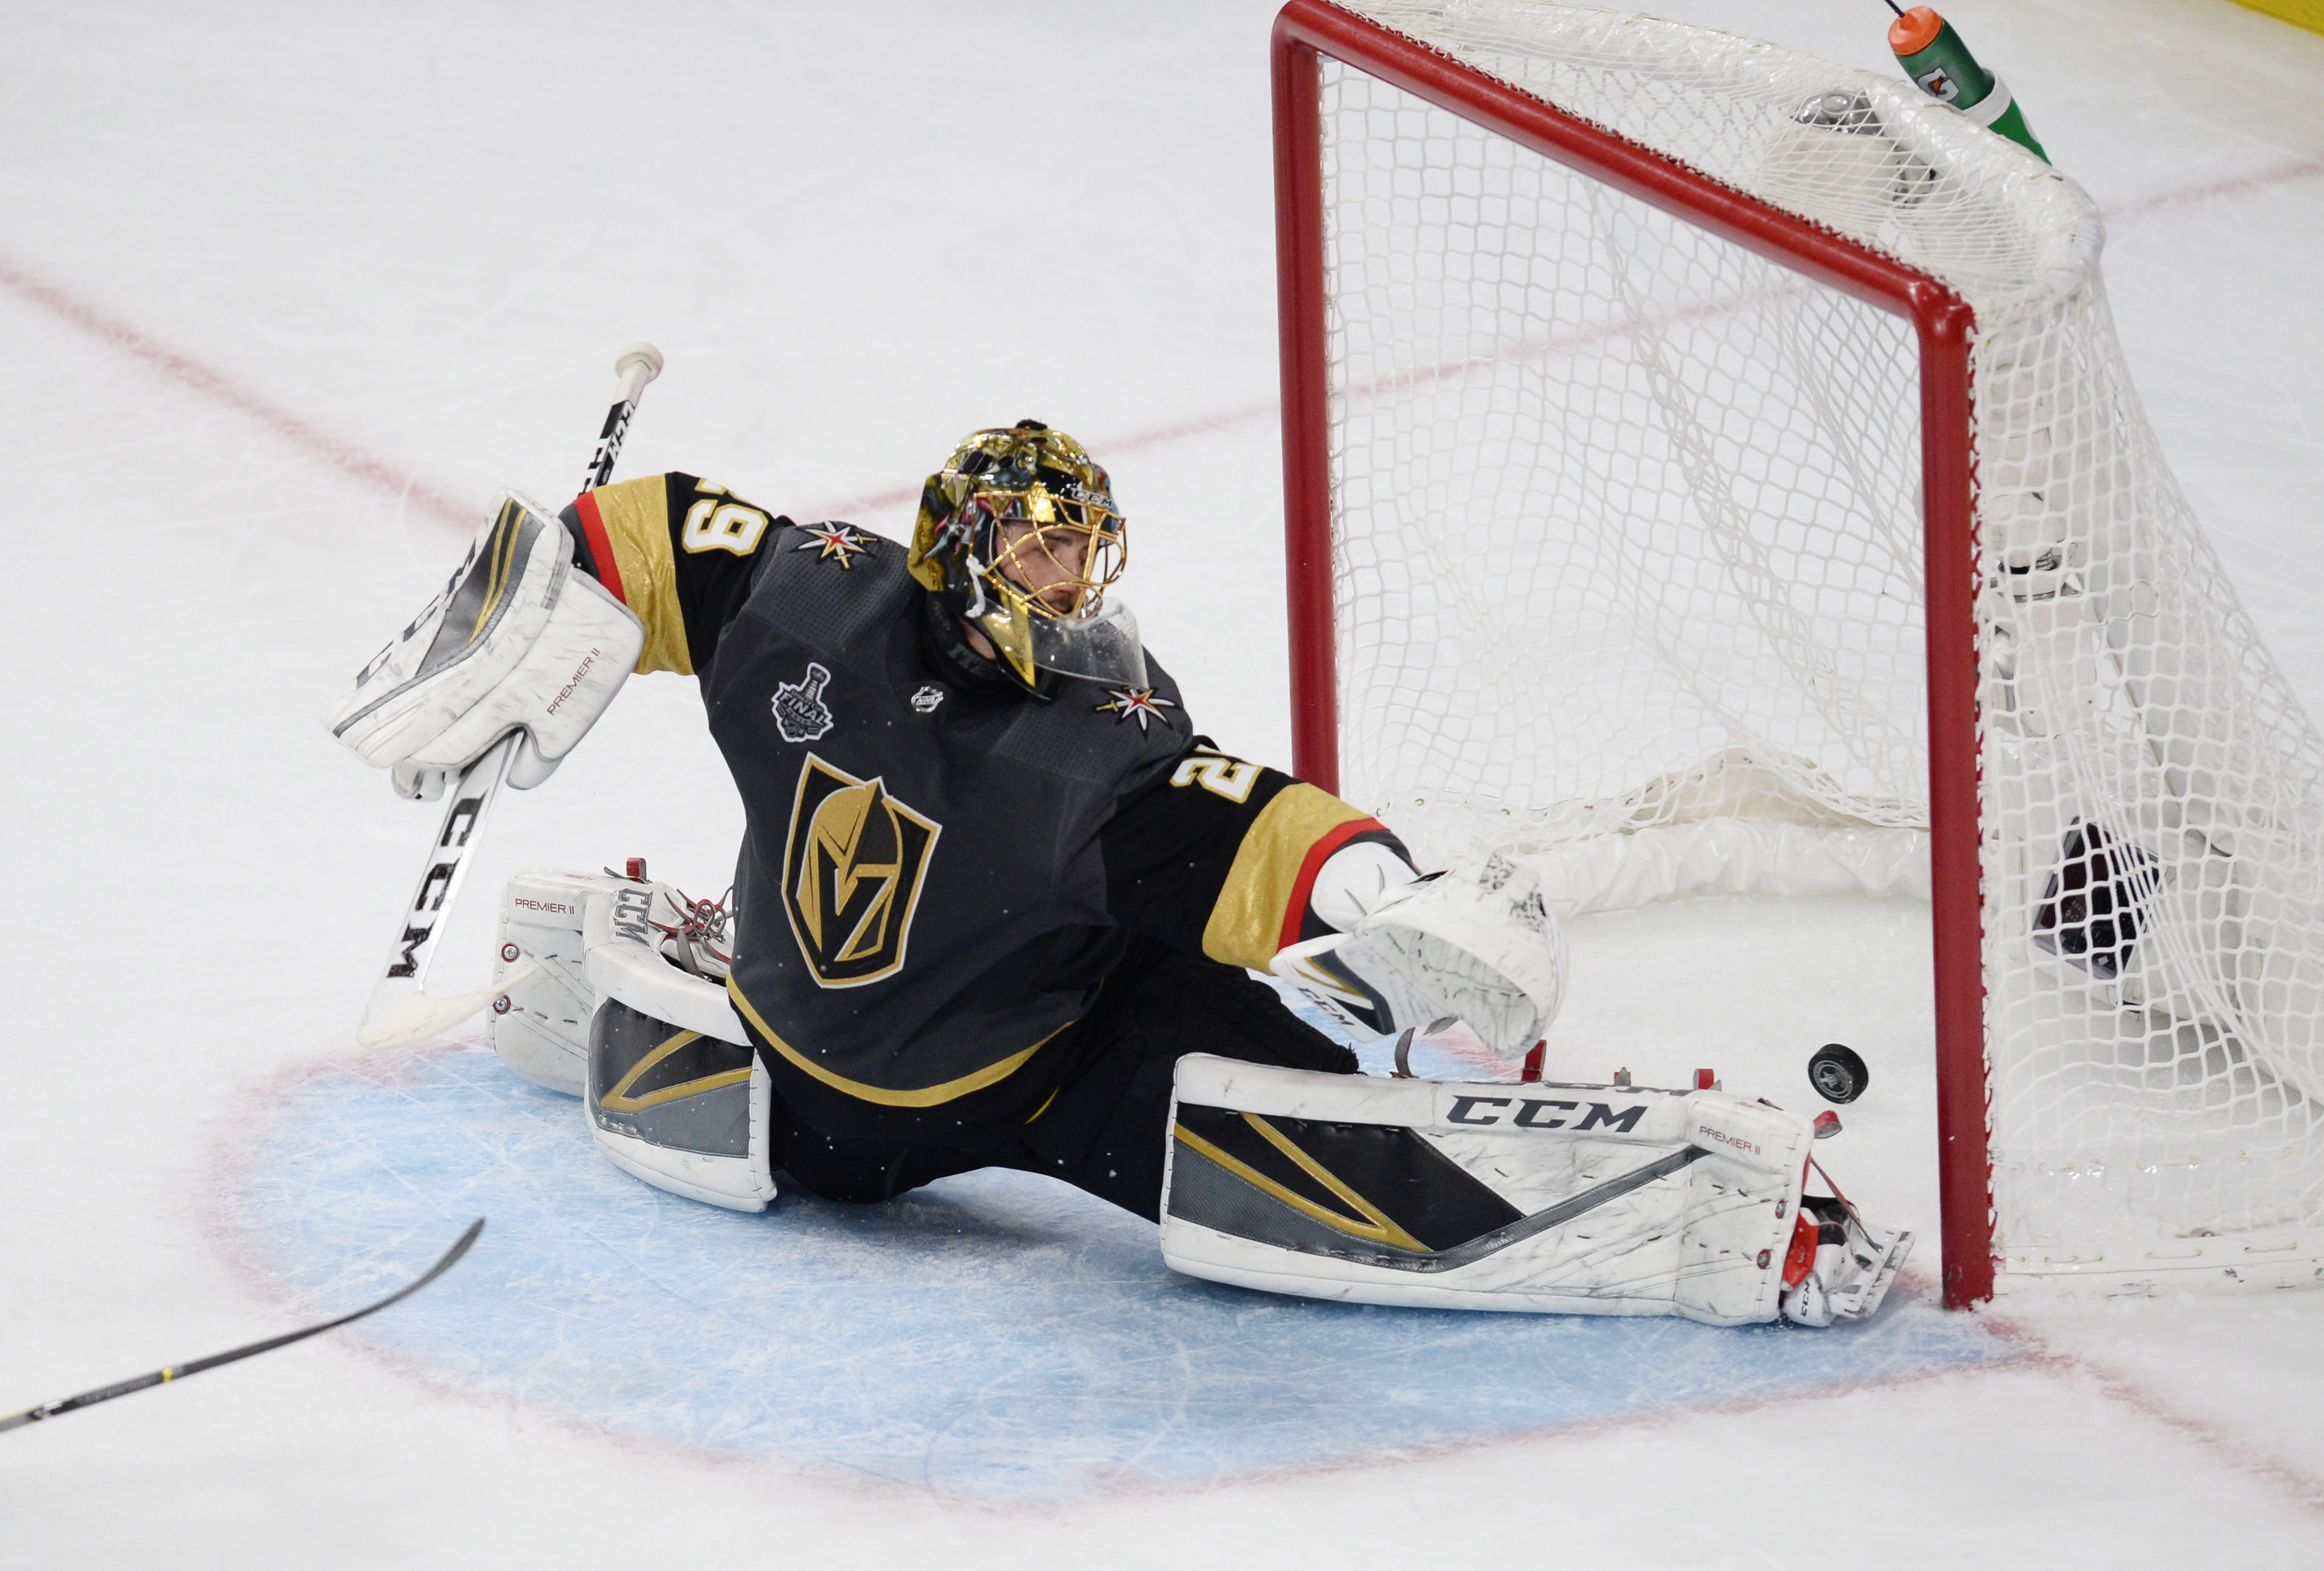 f46c8141a89 Top 5 stories to watch in the NHL s 2018-19 season